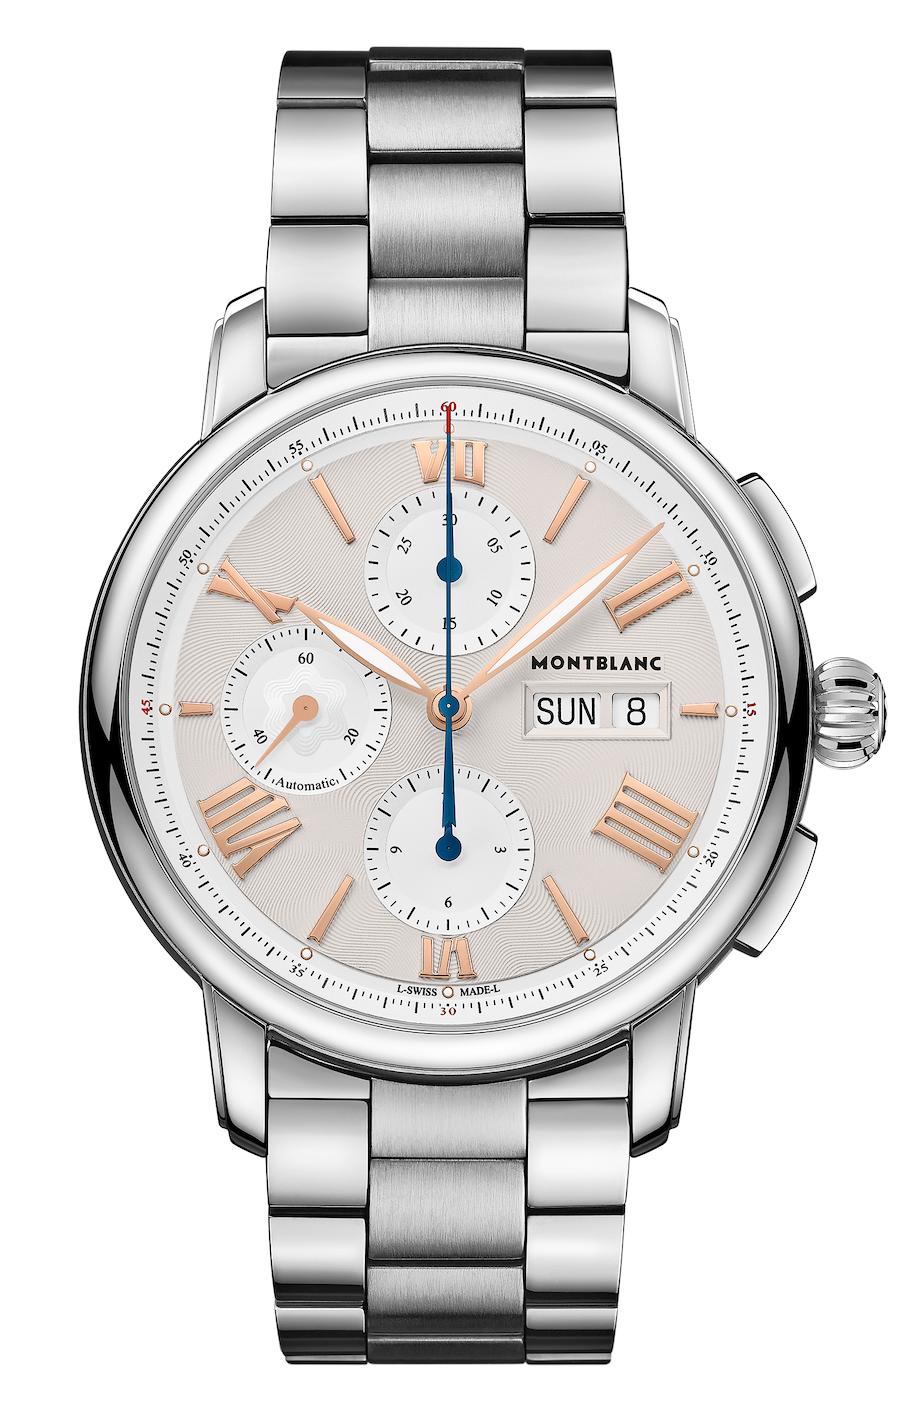 Montblanc Startimer Automatic Chronograph Day and Date watc